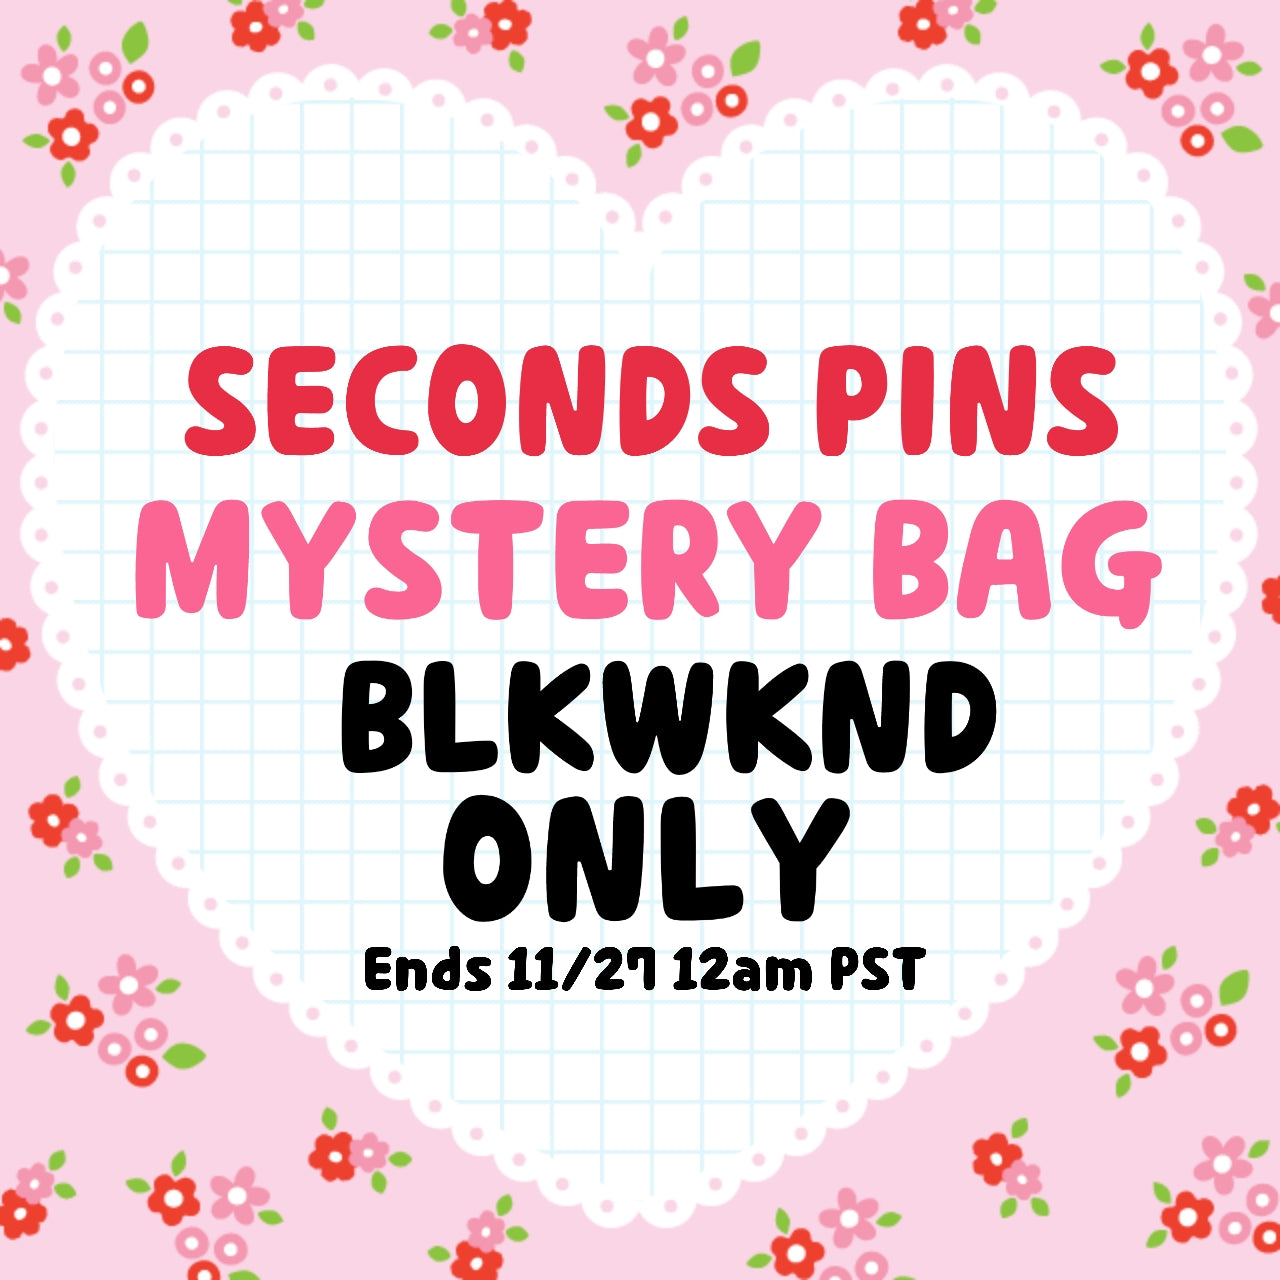 BLKWKND Special - Mystery Bag of Seconds Pins